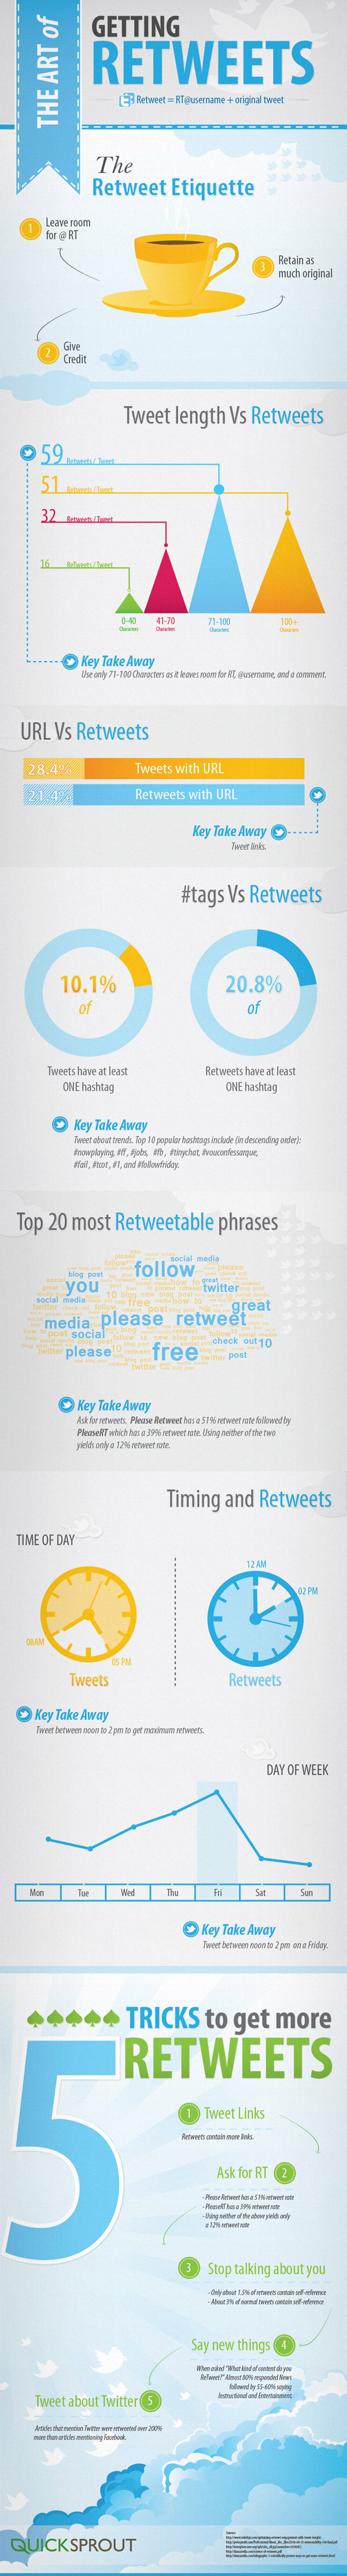 art of getting retweets1 Imprescindibles AB 60